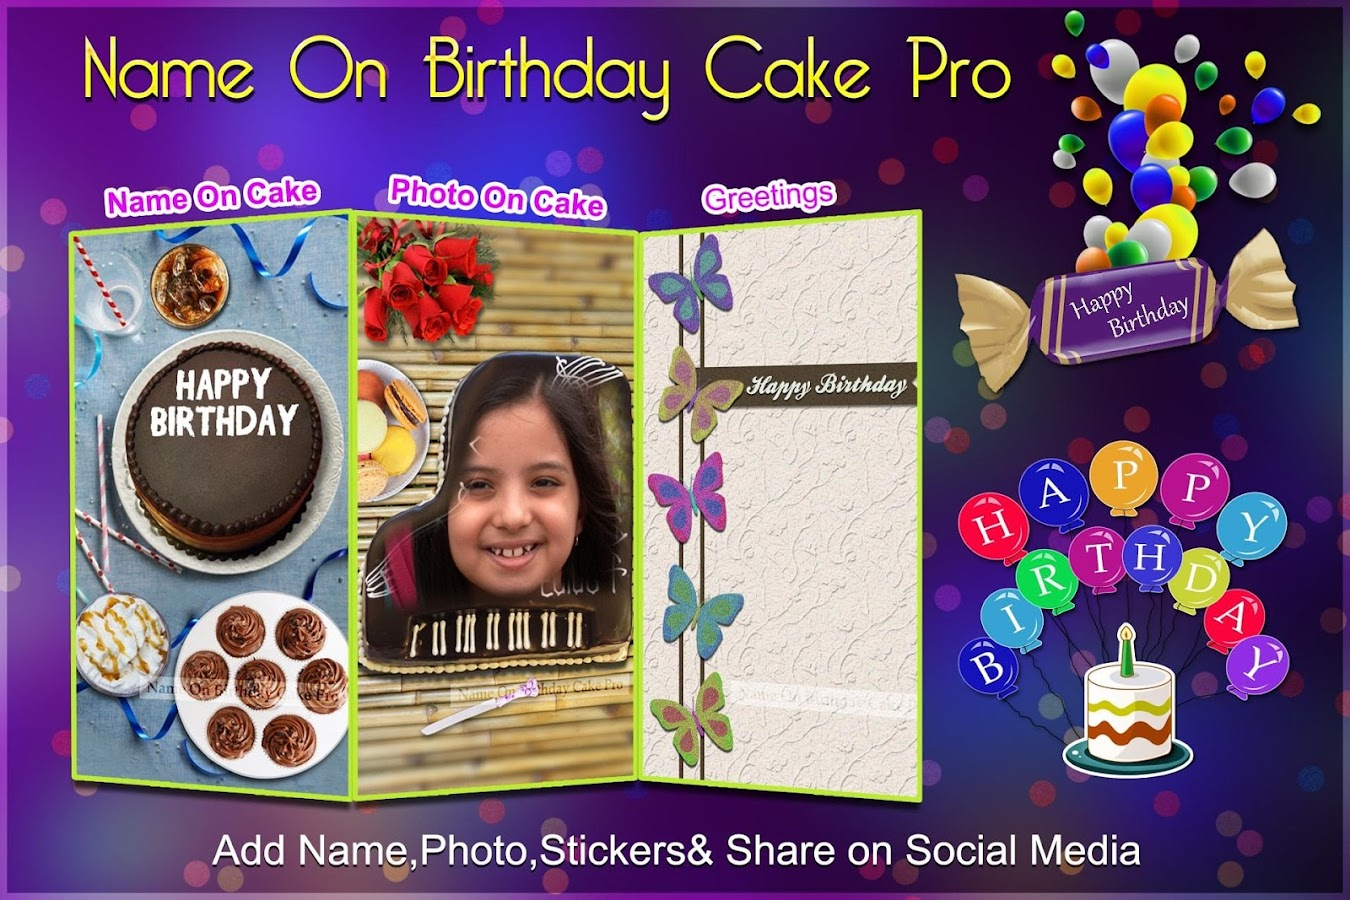 Cake Images With Name Nikhil : Photo On Birthday Cake 1.3 APK Download - Android ...